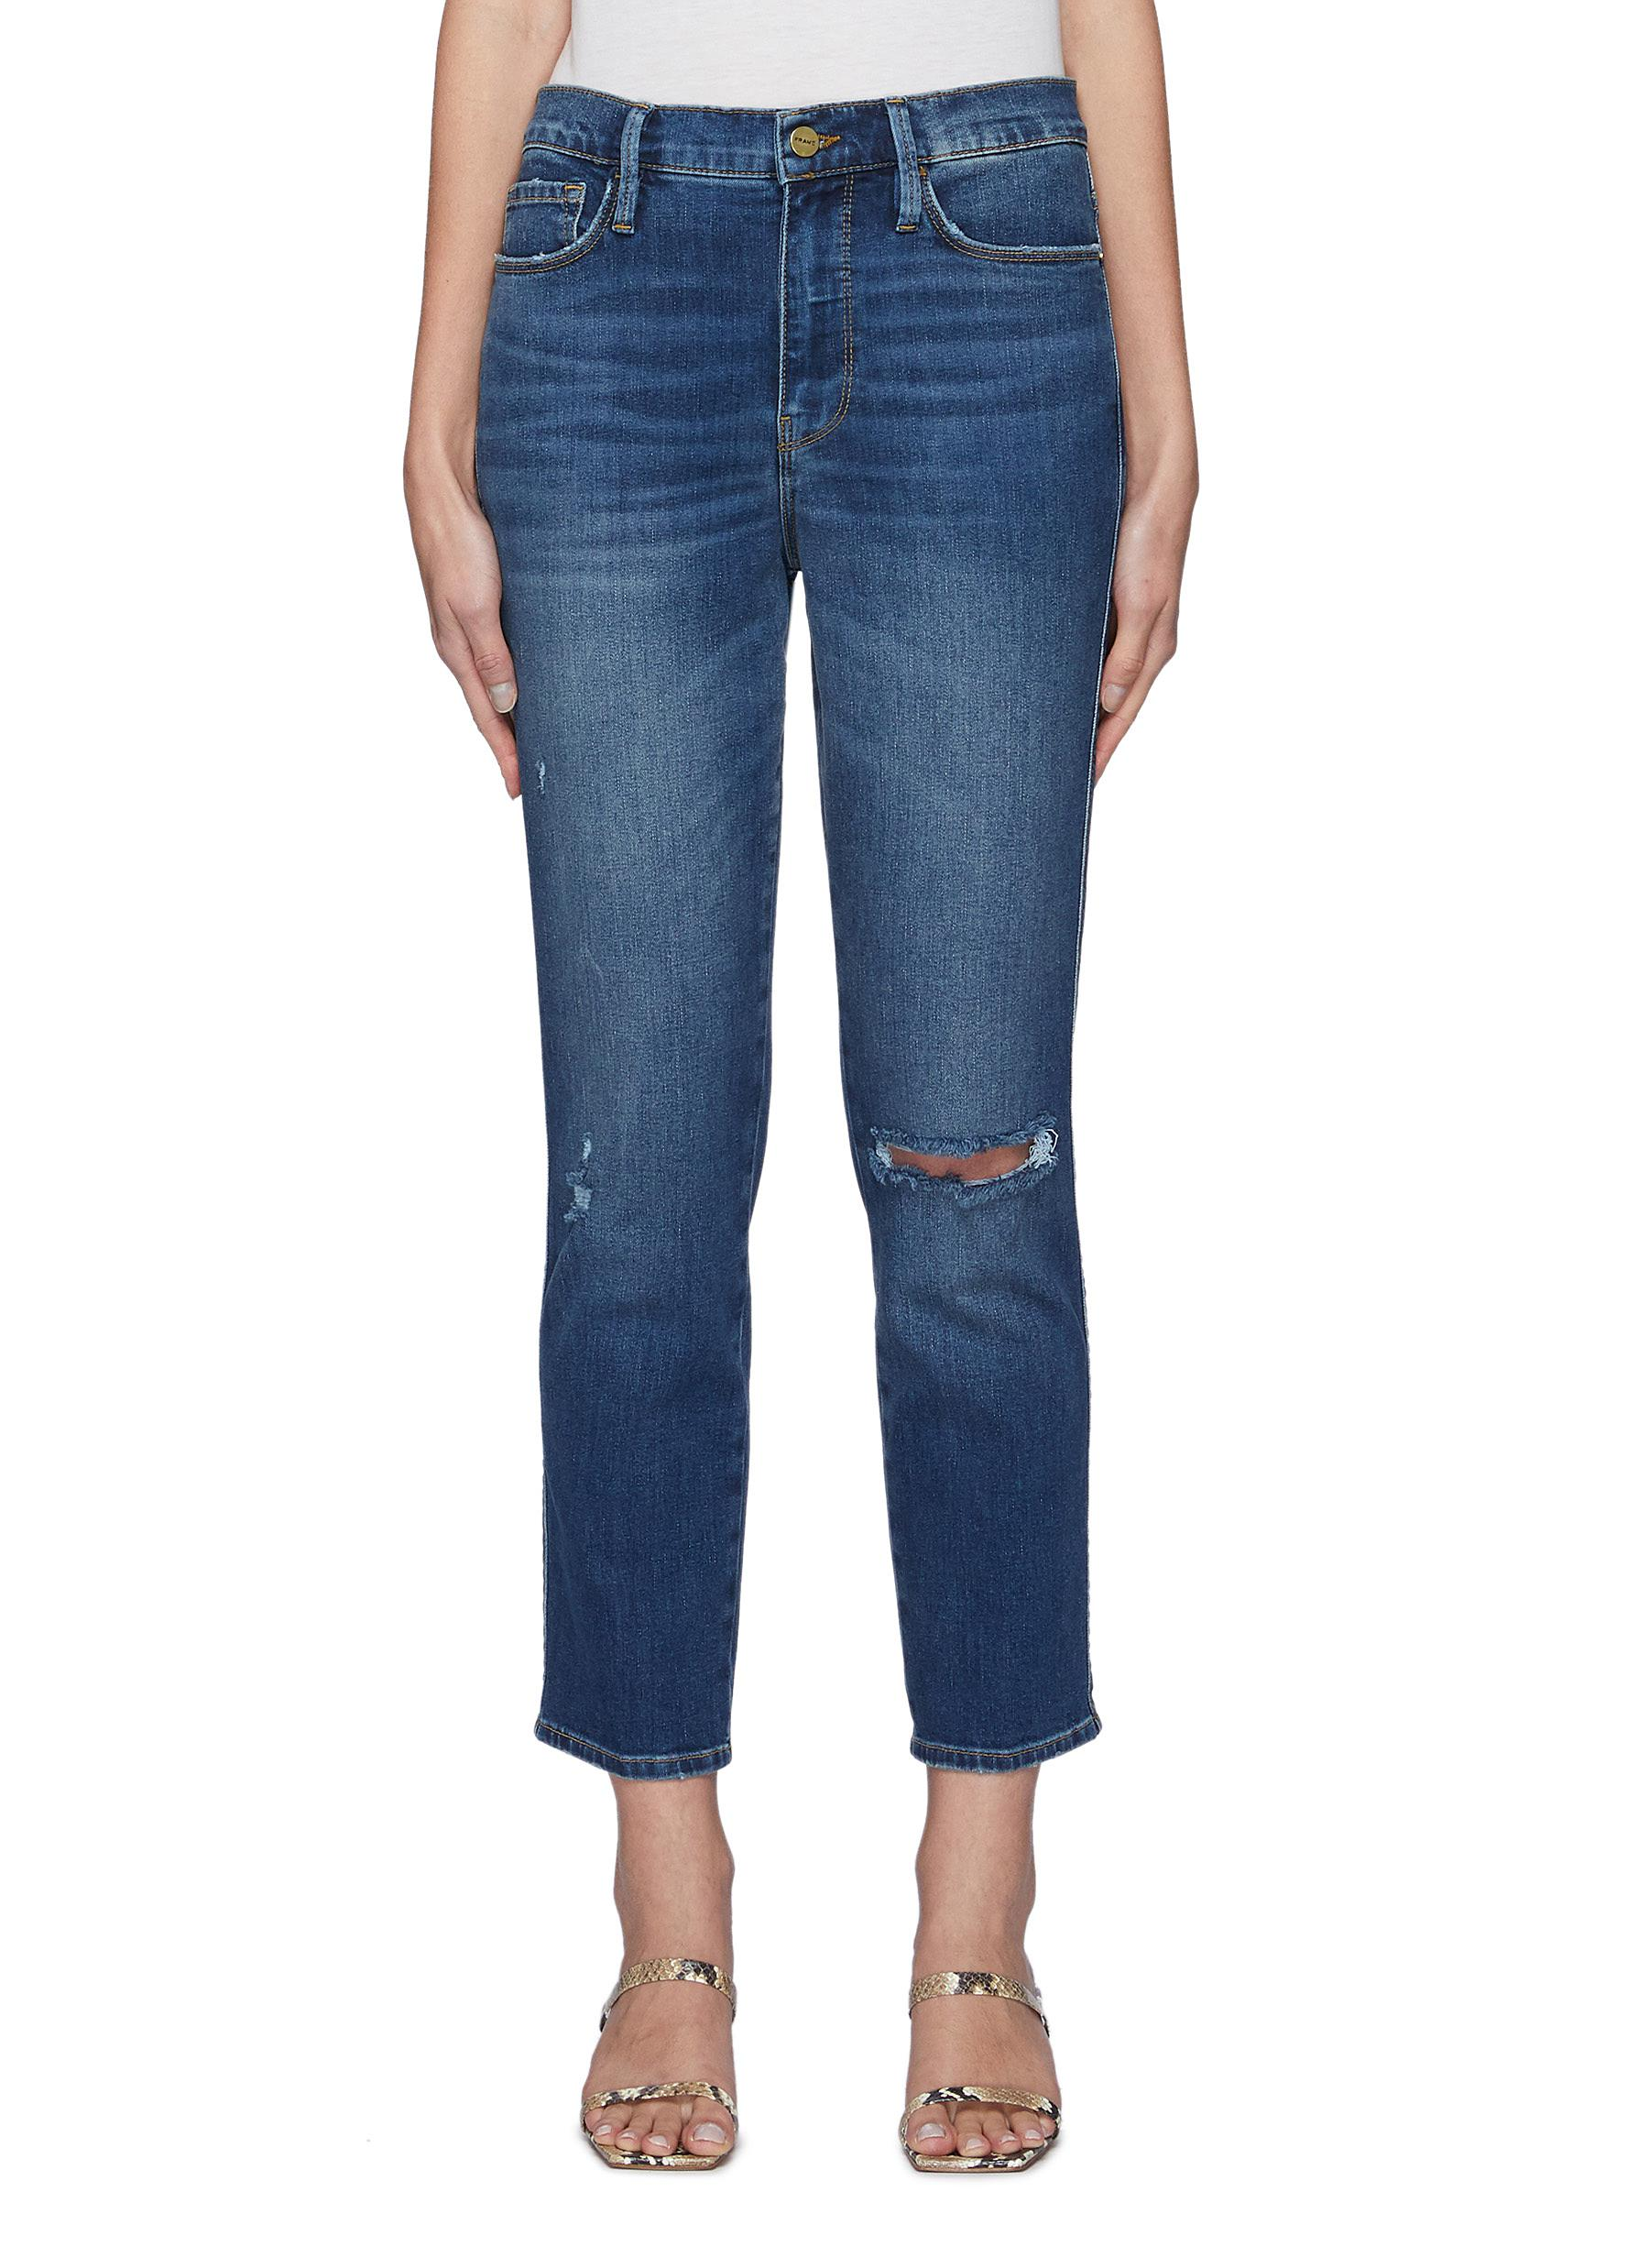 Le Sylvie Crop Raw After Knee Hole Purify Slim Straight Jeans